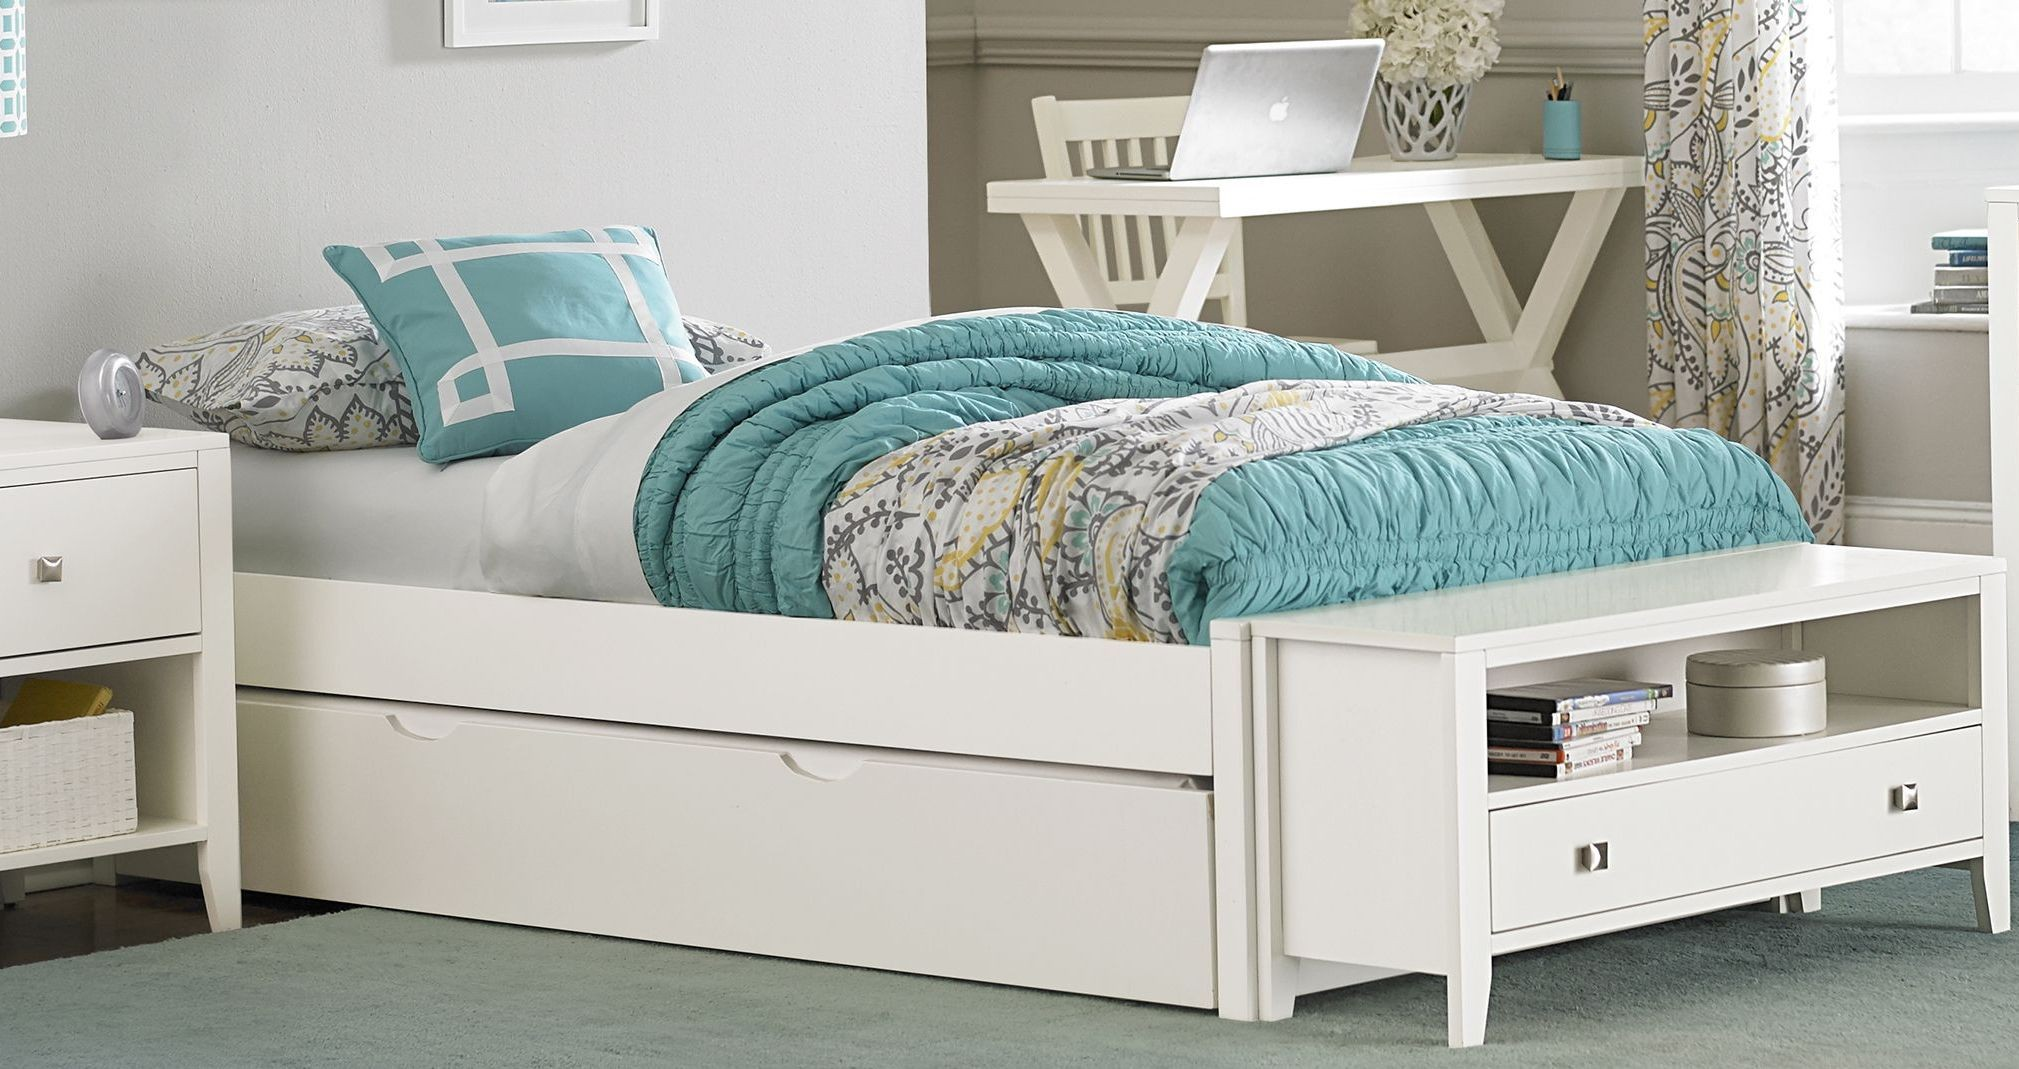 White Trundle Bed Pulse White Full Platform Bed With Trundle From Ne Kids